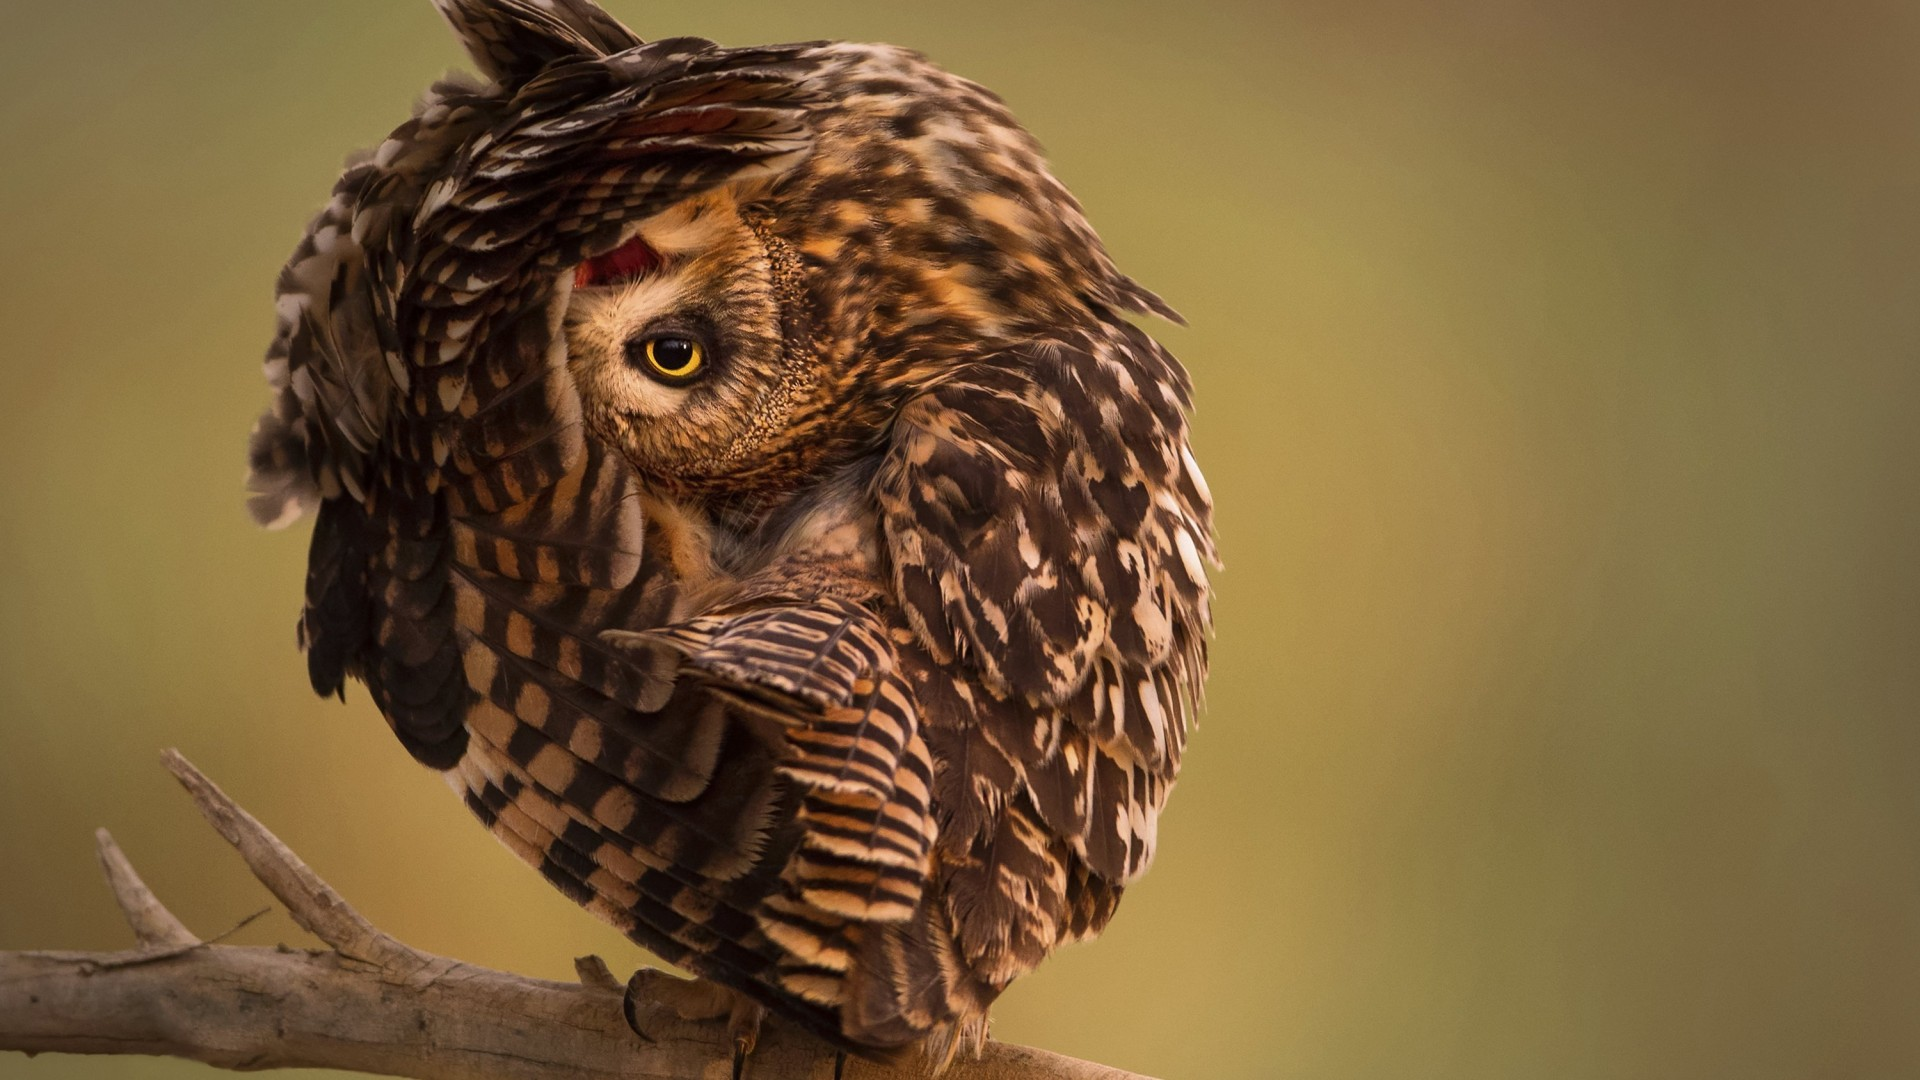 National Geographic, 4k, HD, сова, смешные, National Geographic, 4k, HD wallpaper, Owl, Funny (horizontal)